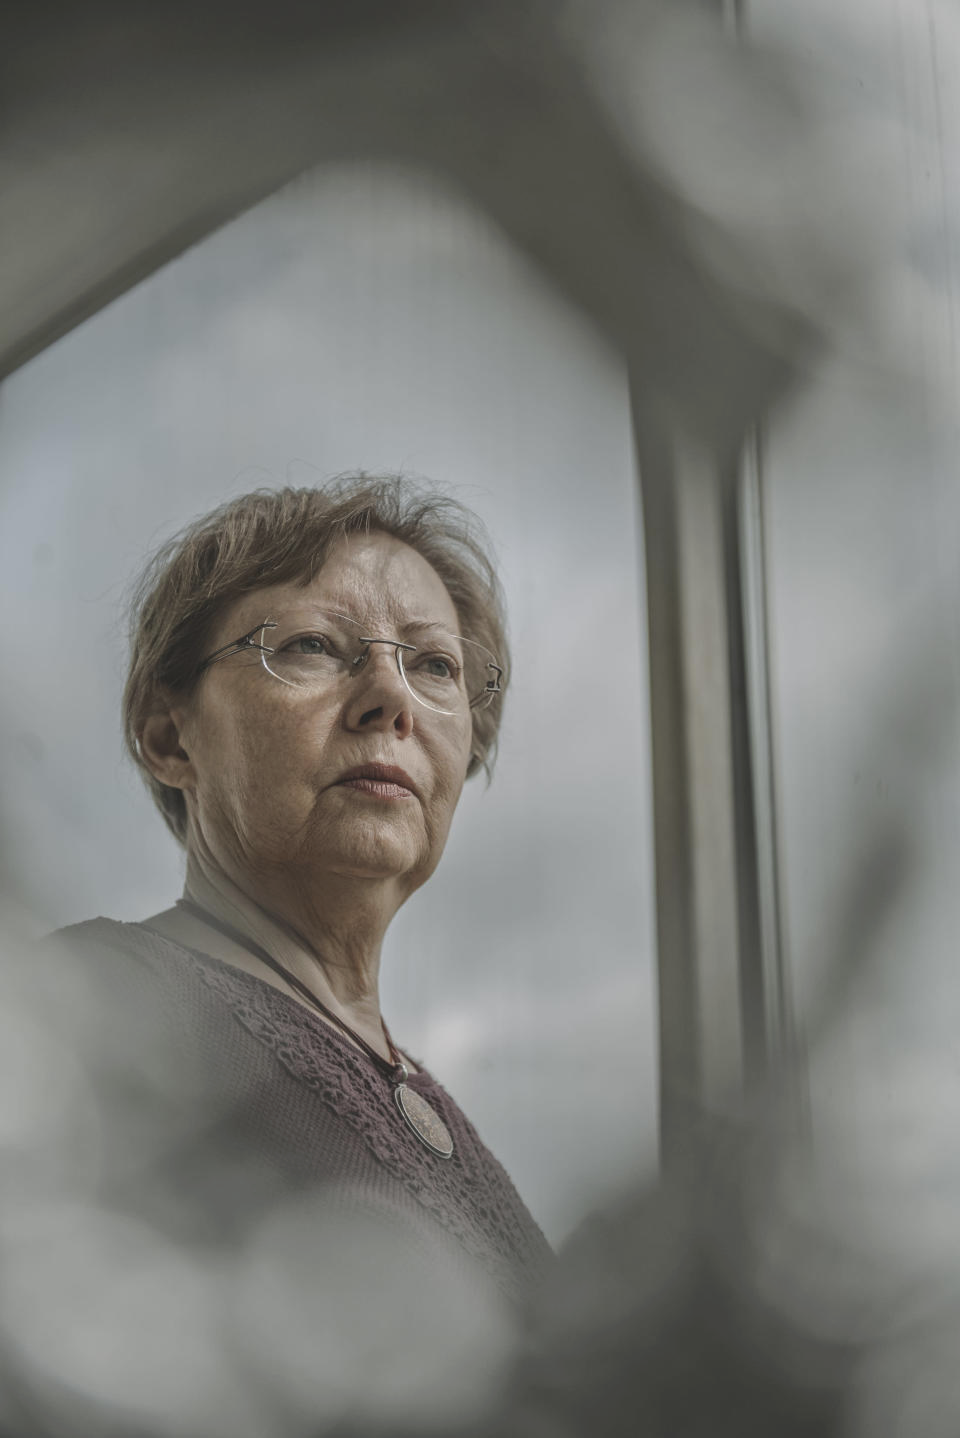 Juliane Diller, who recently retired as deputy director of the Bavarian State Collection of Zoology, stands for a portrait at the institution in Munich, May 19, 2021. (Laetitia Vancon for The New York Times)